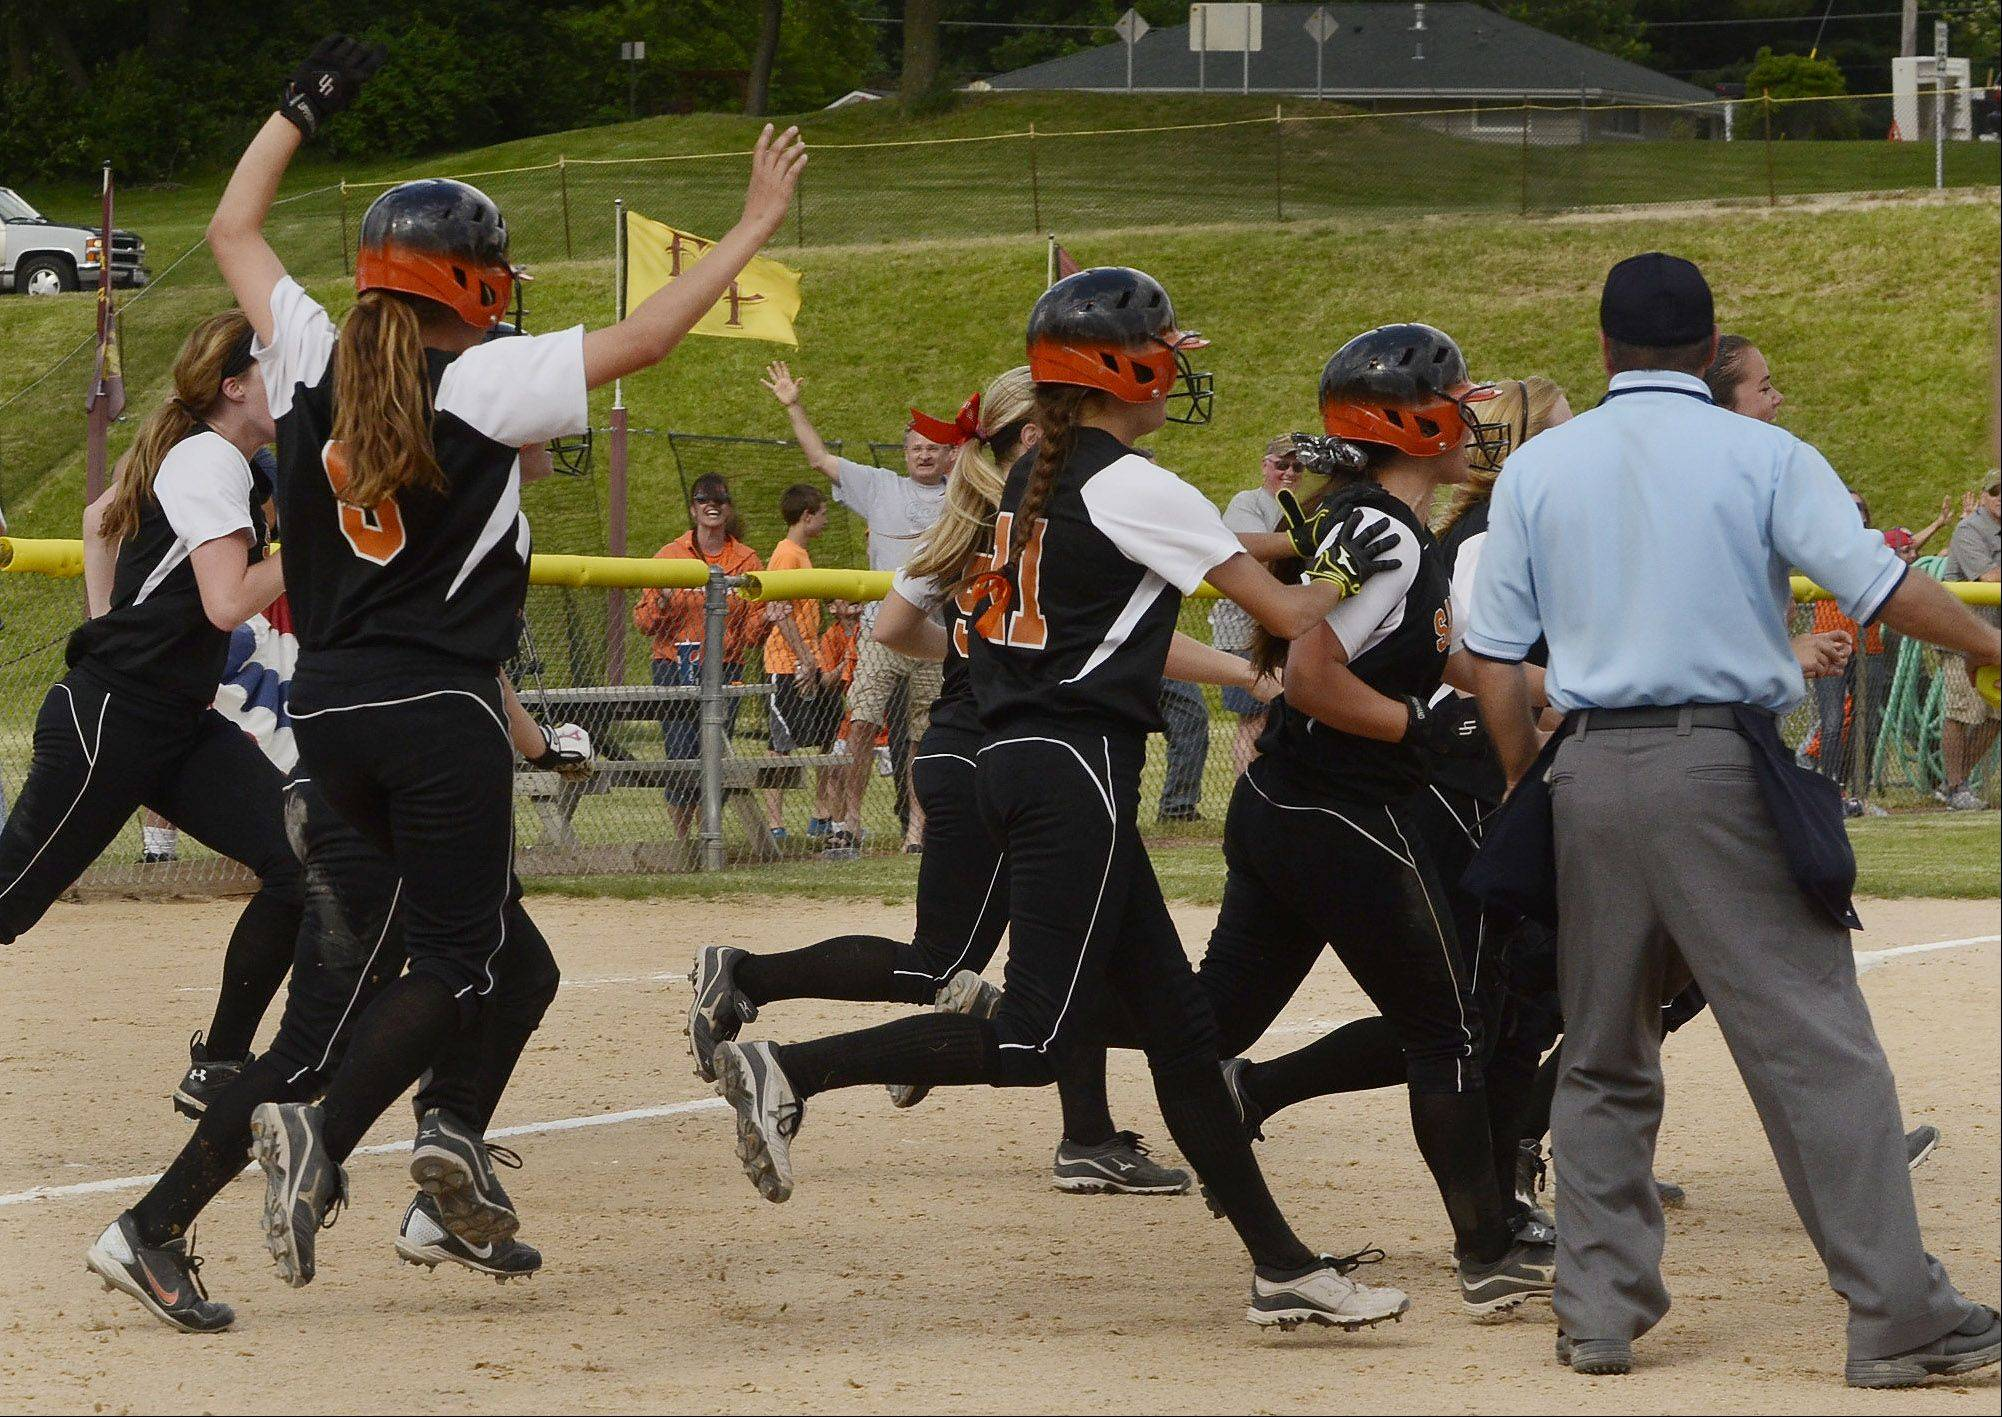 St. Charles East players pour out of the dugout after winning in the bottom of the seventh inning on a 2-run double by Olivia Lorenzini in the Class 4A state semifinals.